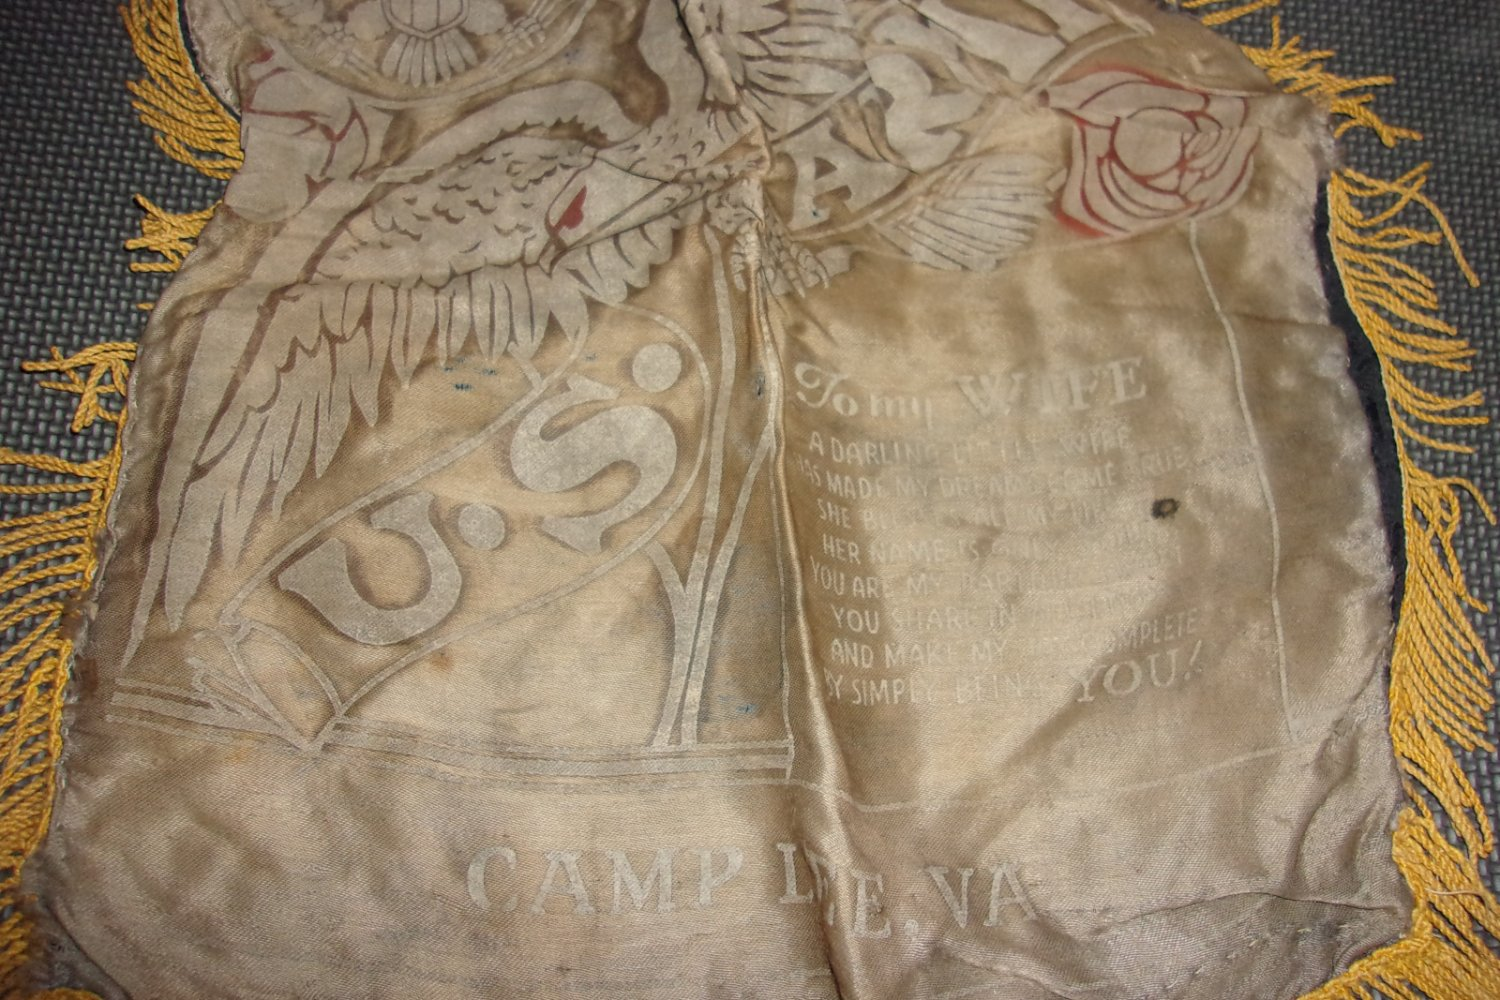 Vintage World War II  - My Wife Pillow Cover- Camp Lee Va